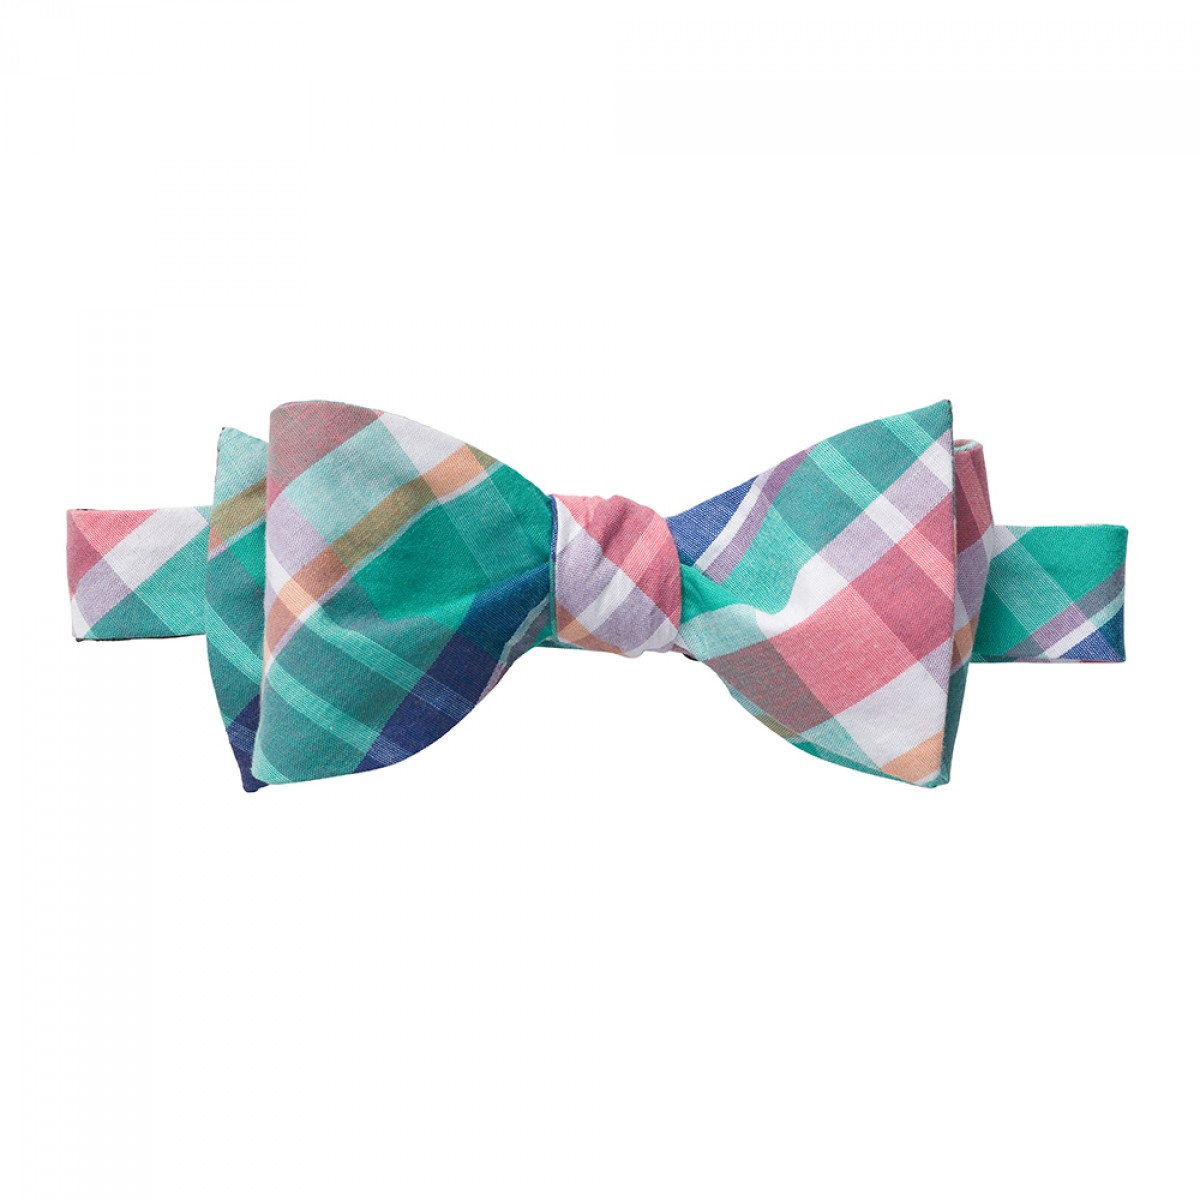 Madras Plaid Bow - Teal